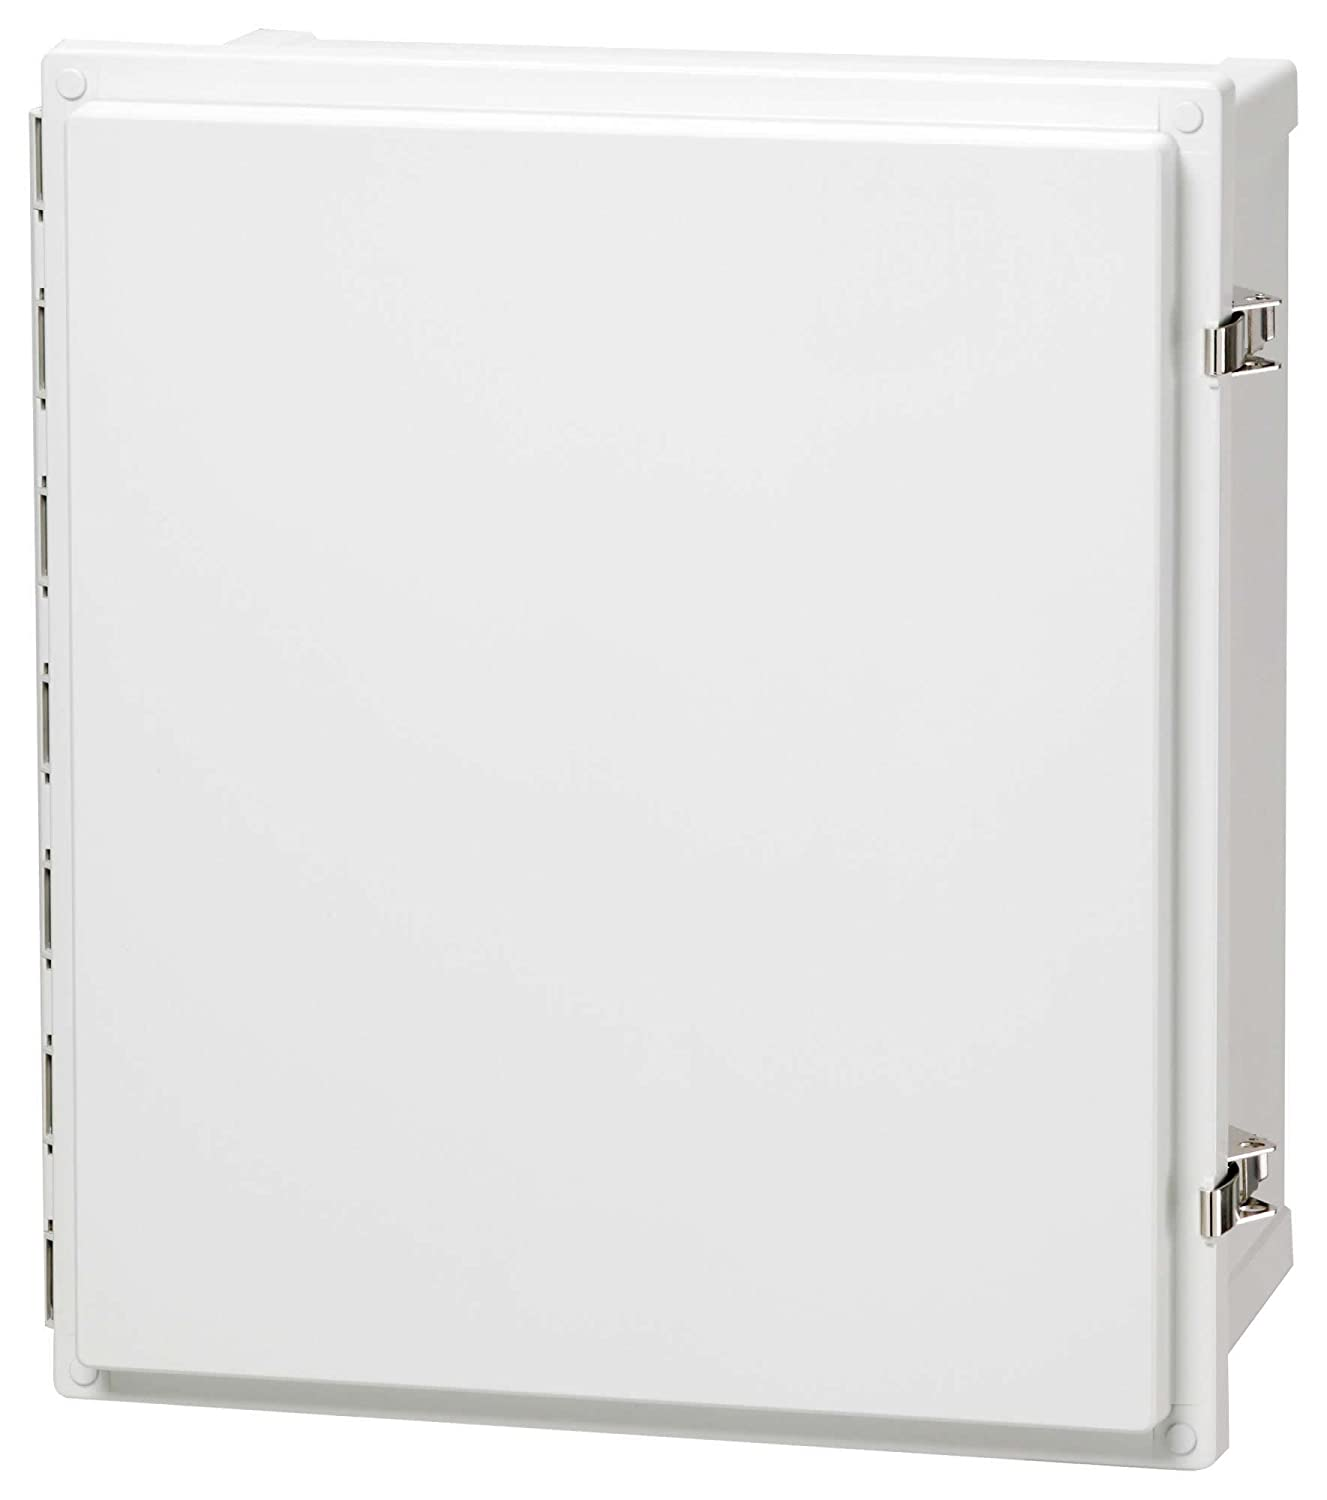 Fibox Enclosures AR1086CHSSL UL Listed Nema 4X Polycarbonate Enclosure with Hinged Opaque Screw Cover and Stainless Steel Lockable Latch, 6 Height, 8 Width, 10 Length